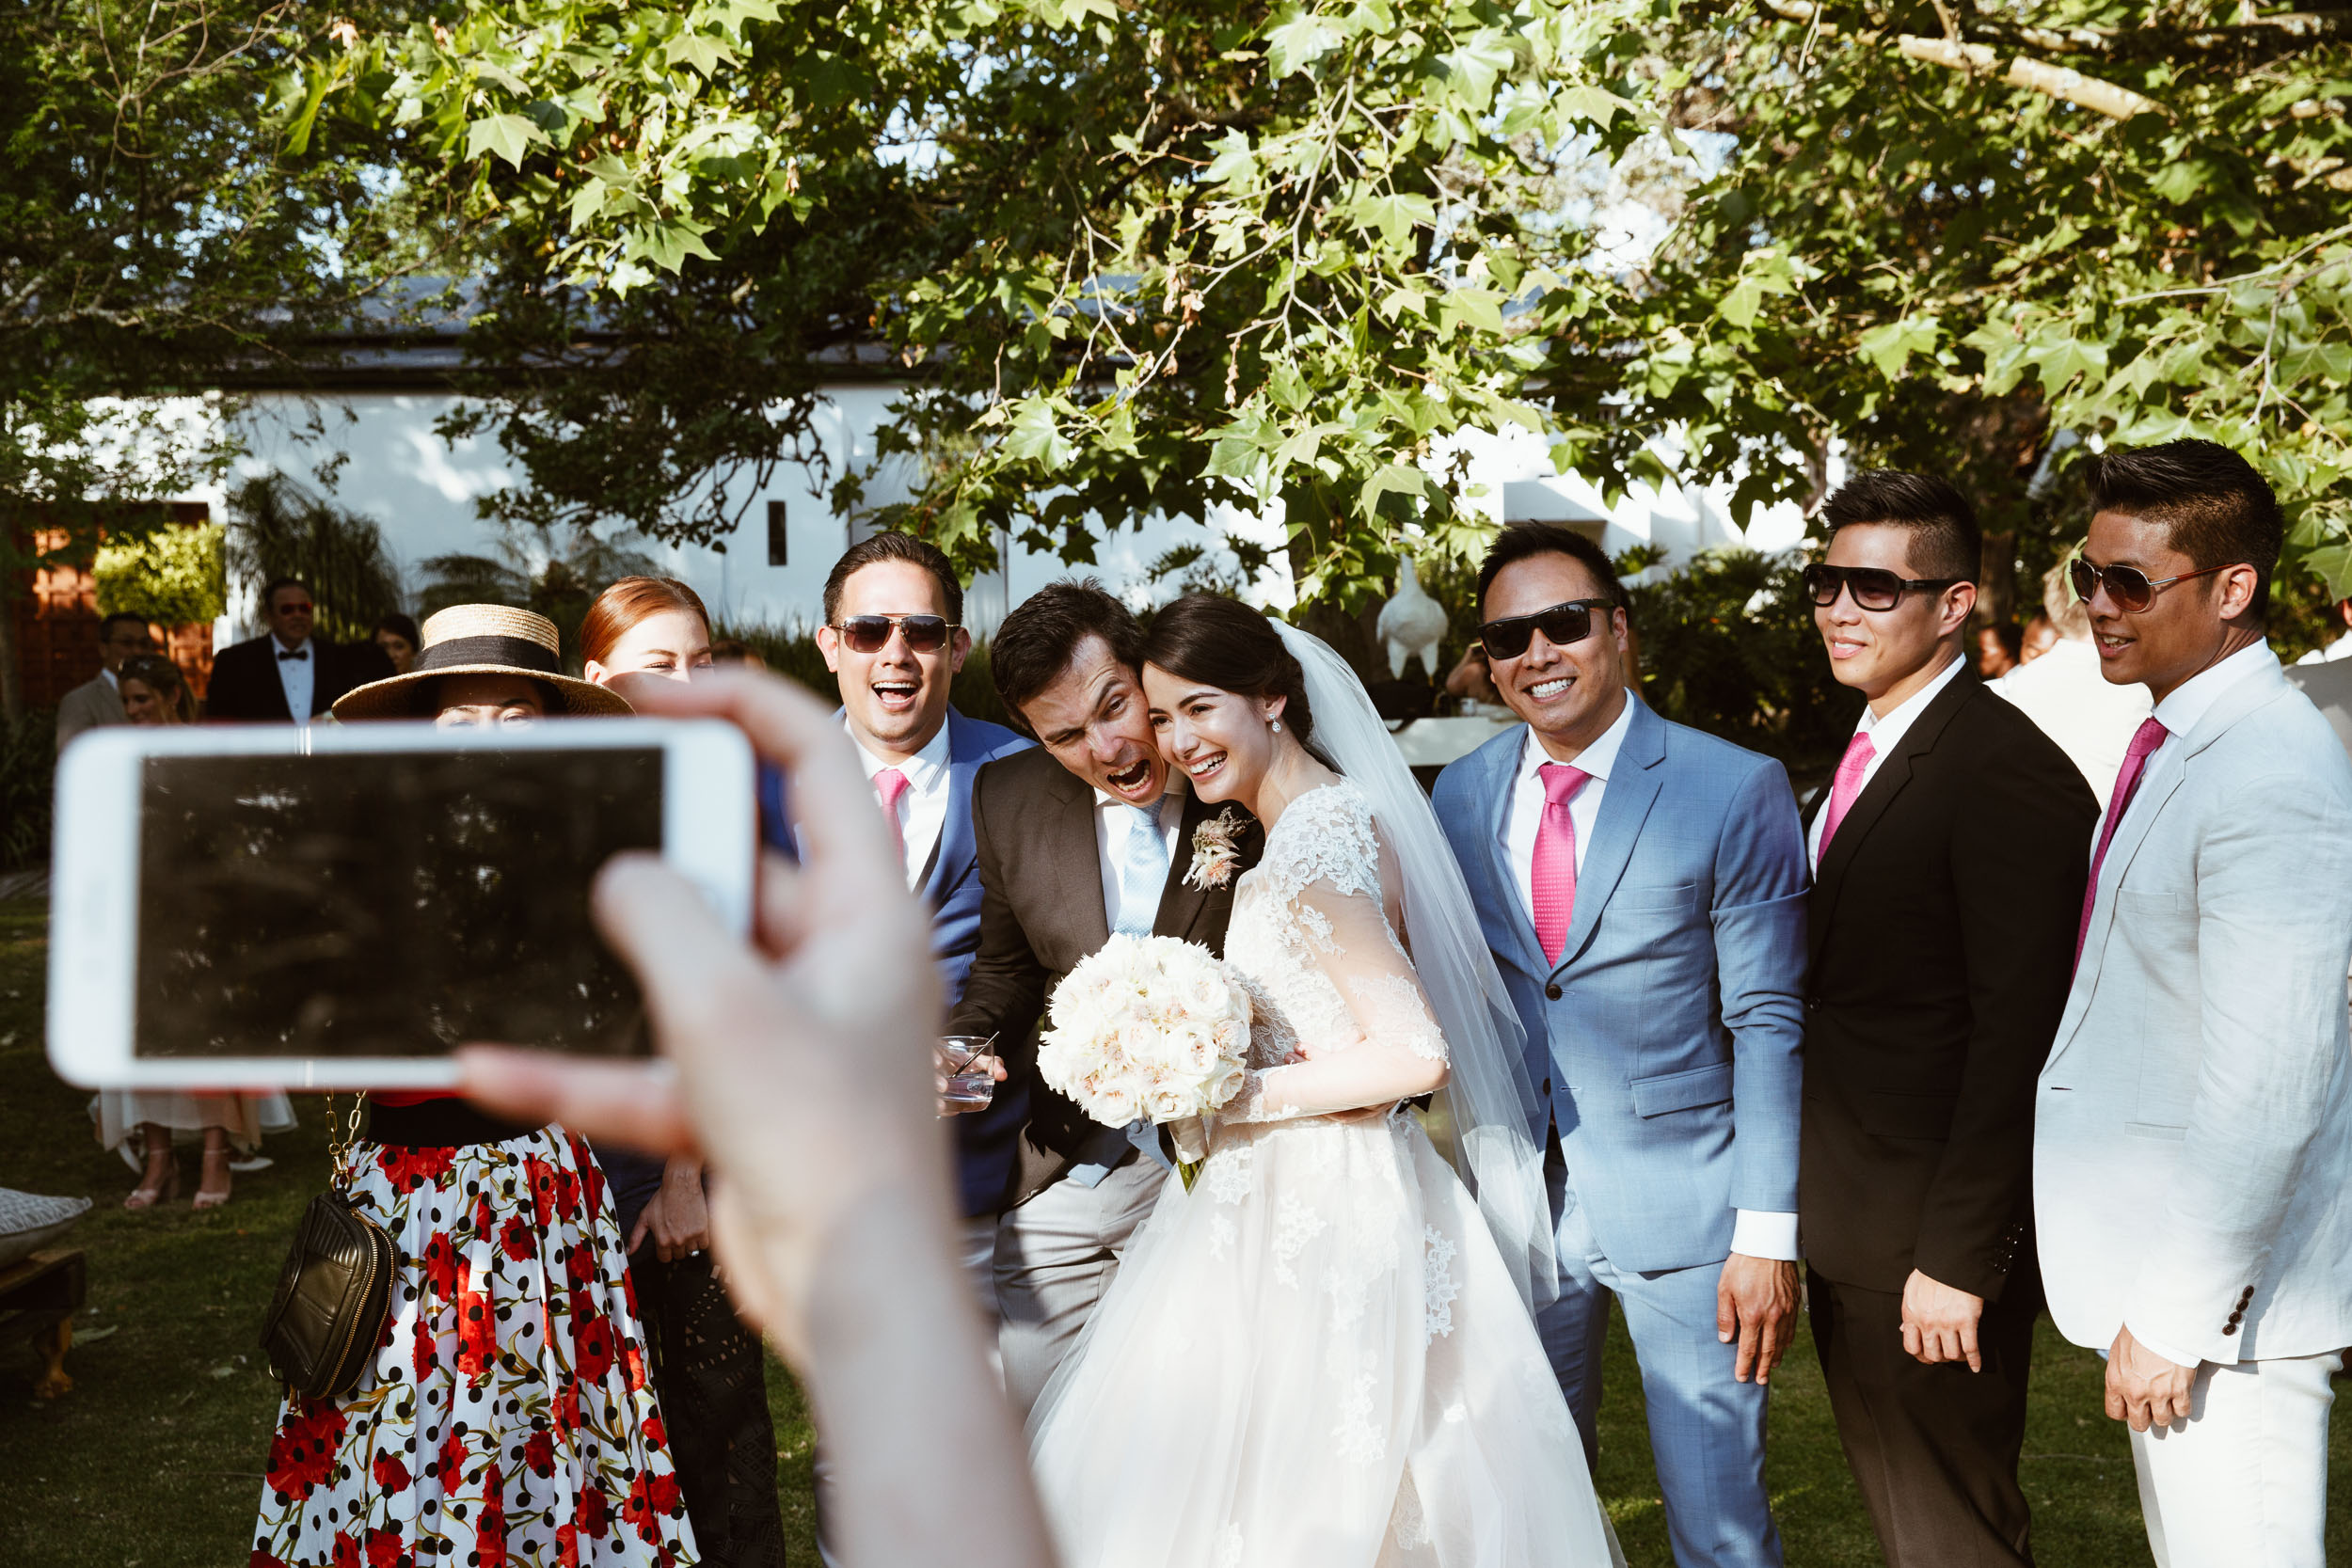 Jenny-Rockett-John-Scranton-Cape-Town-Wedding-Photographer-Andrea-Kellan-125.jpg